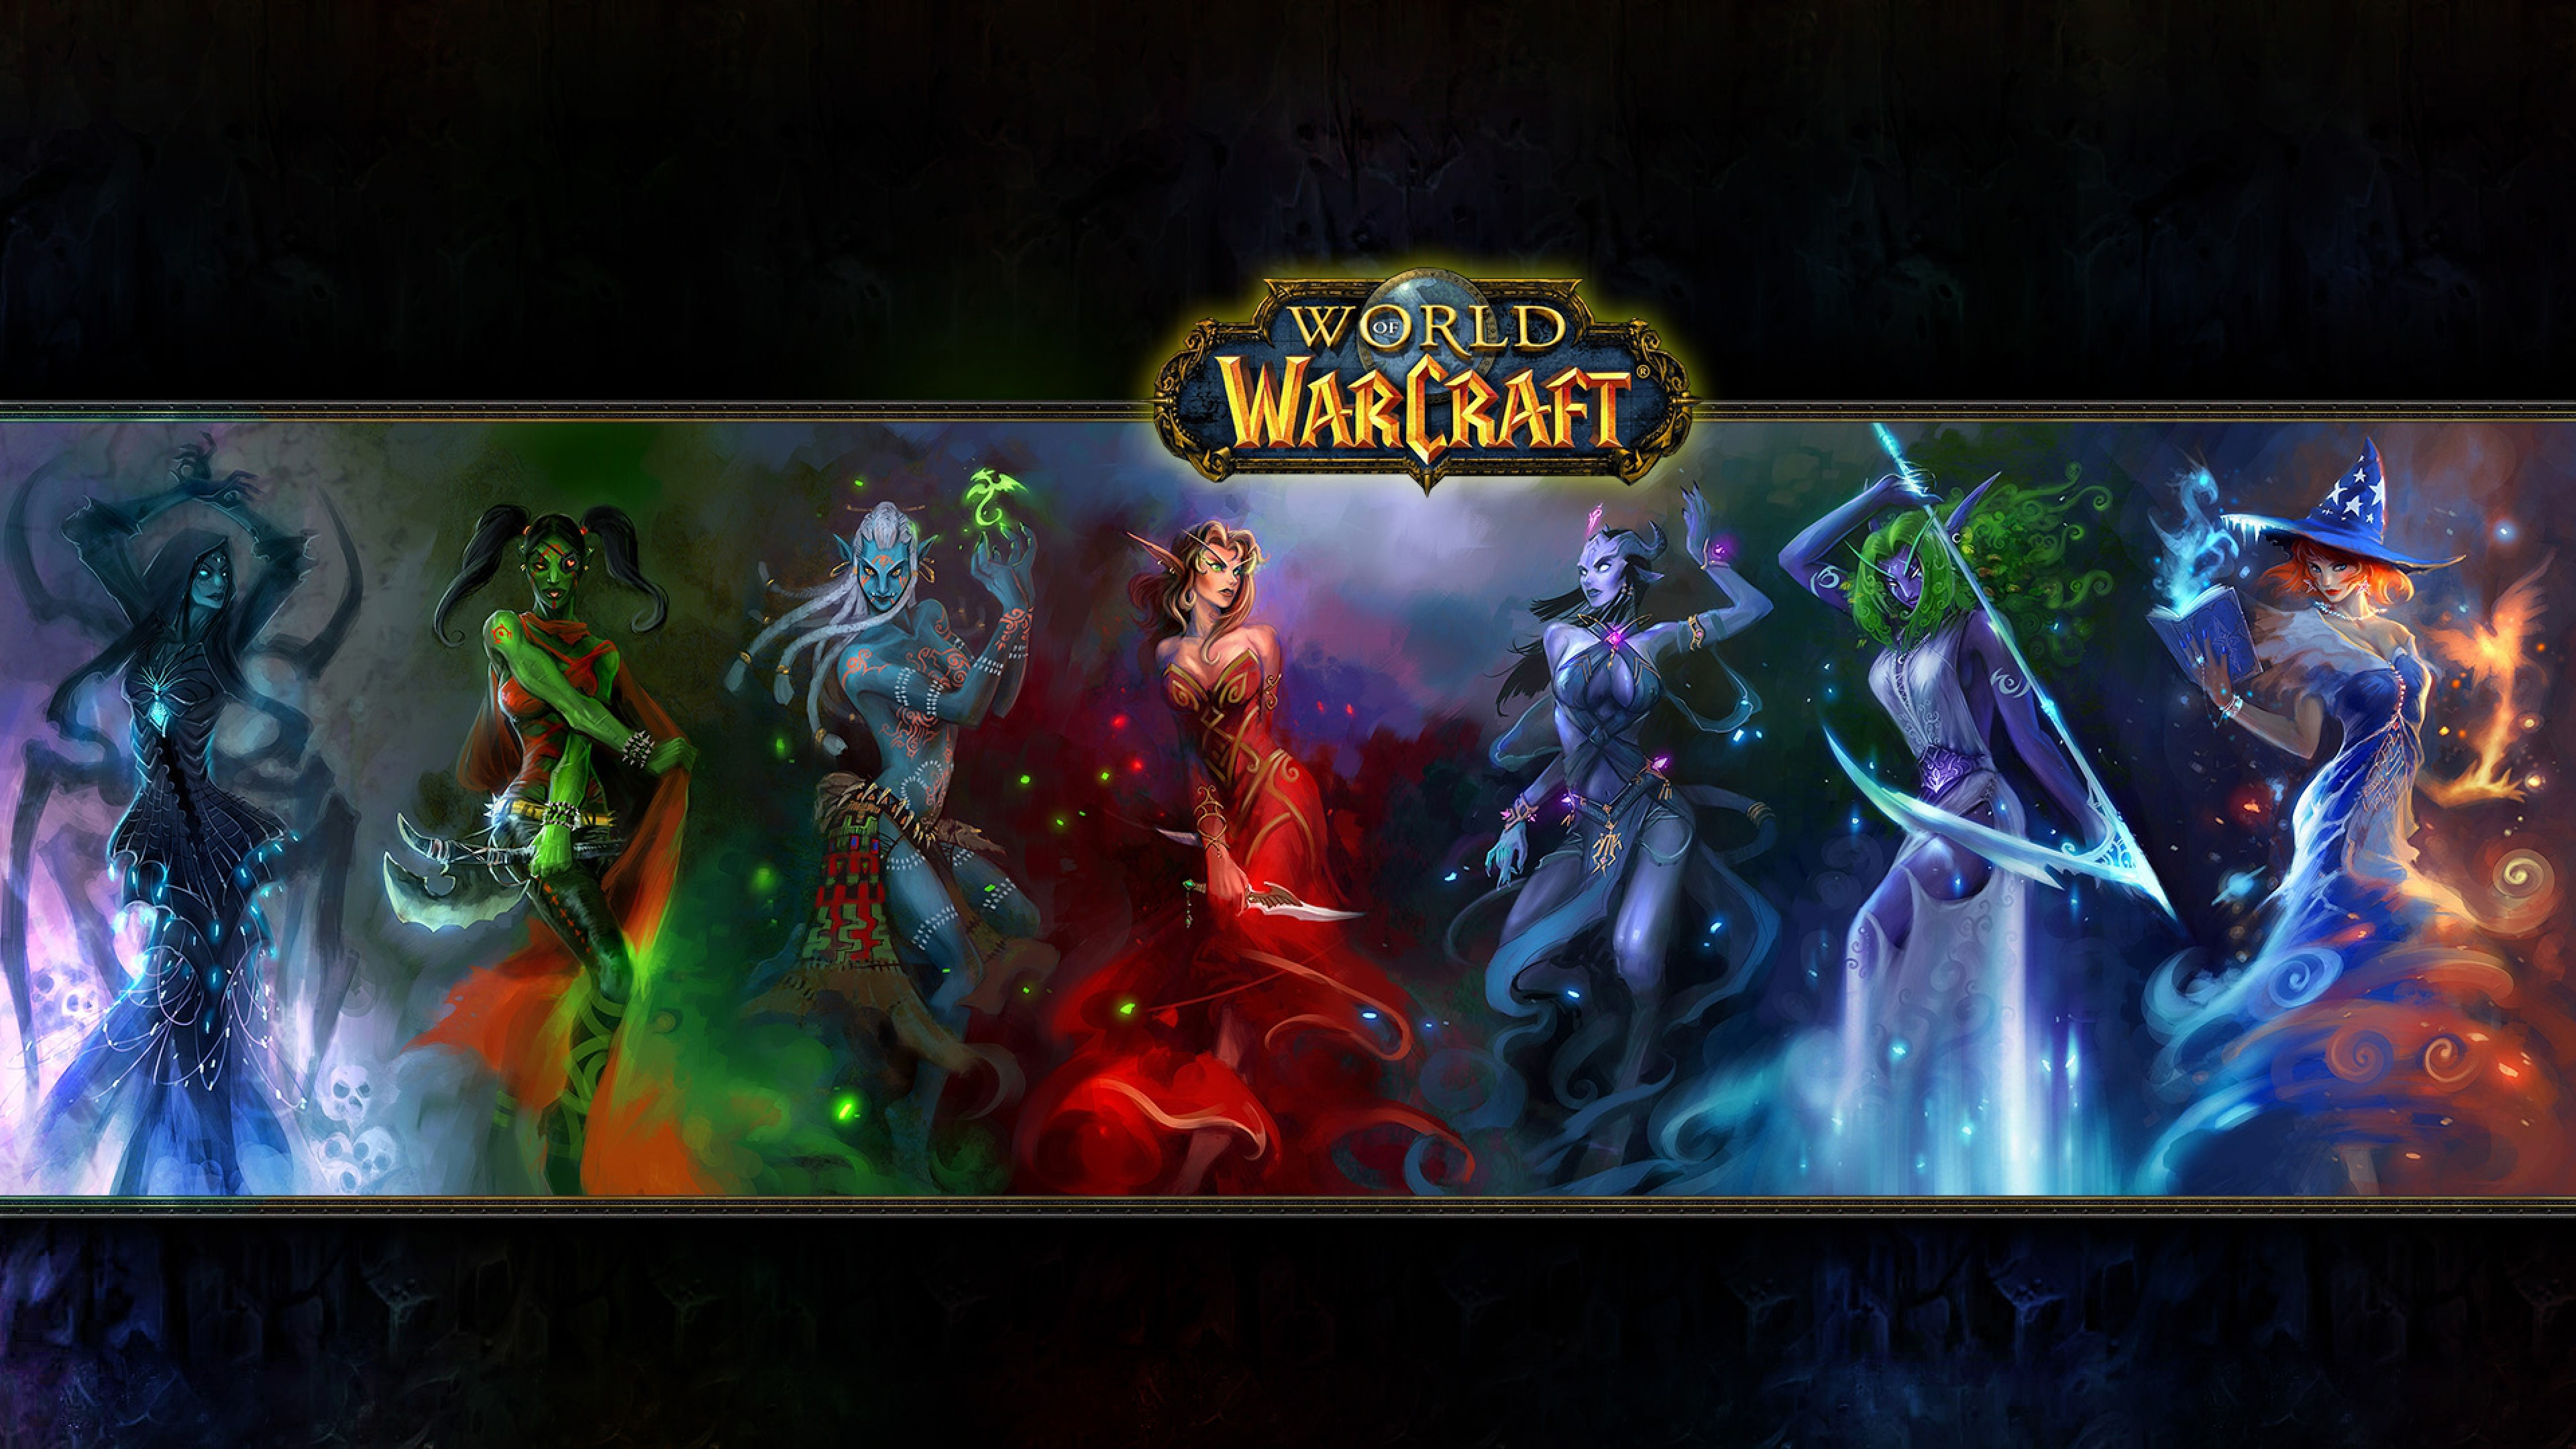 World of warcraft Characters Faces Fan art Wallpaper Background 4K 3840x2160